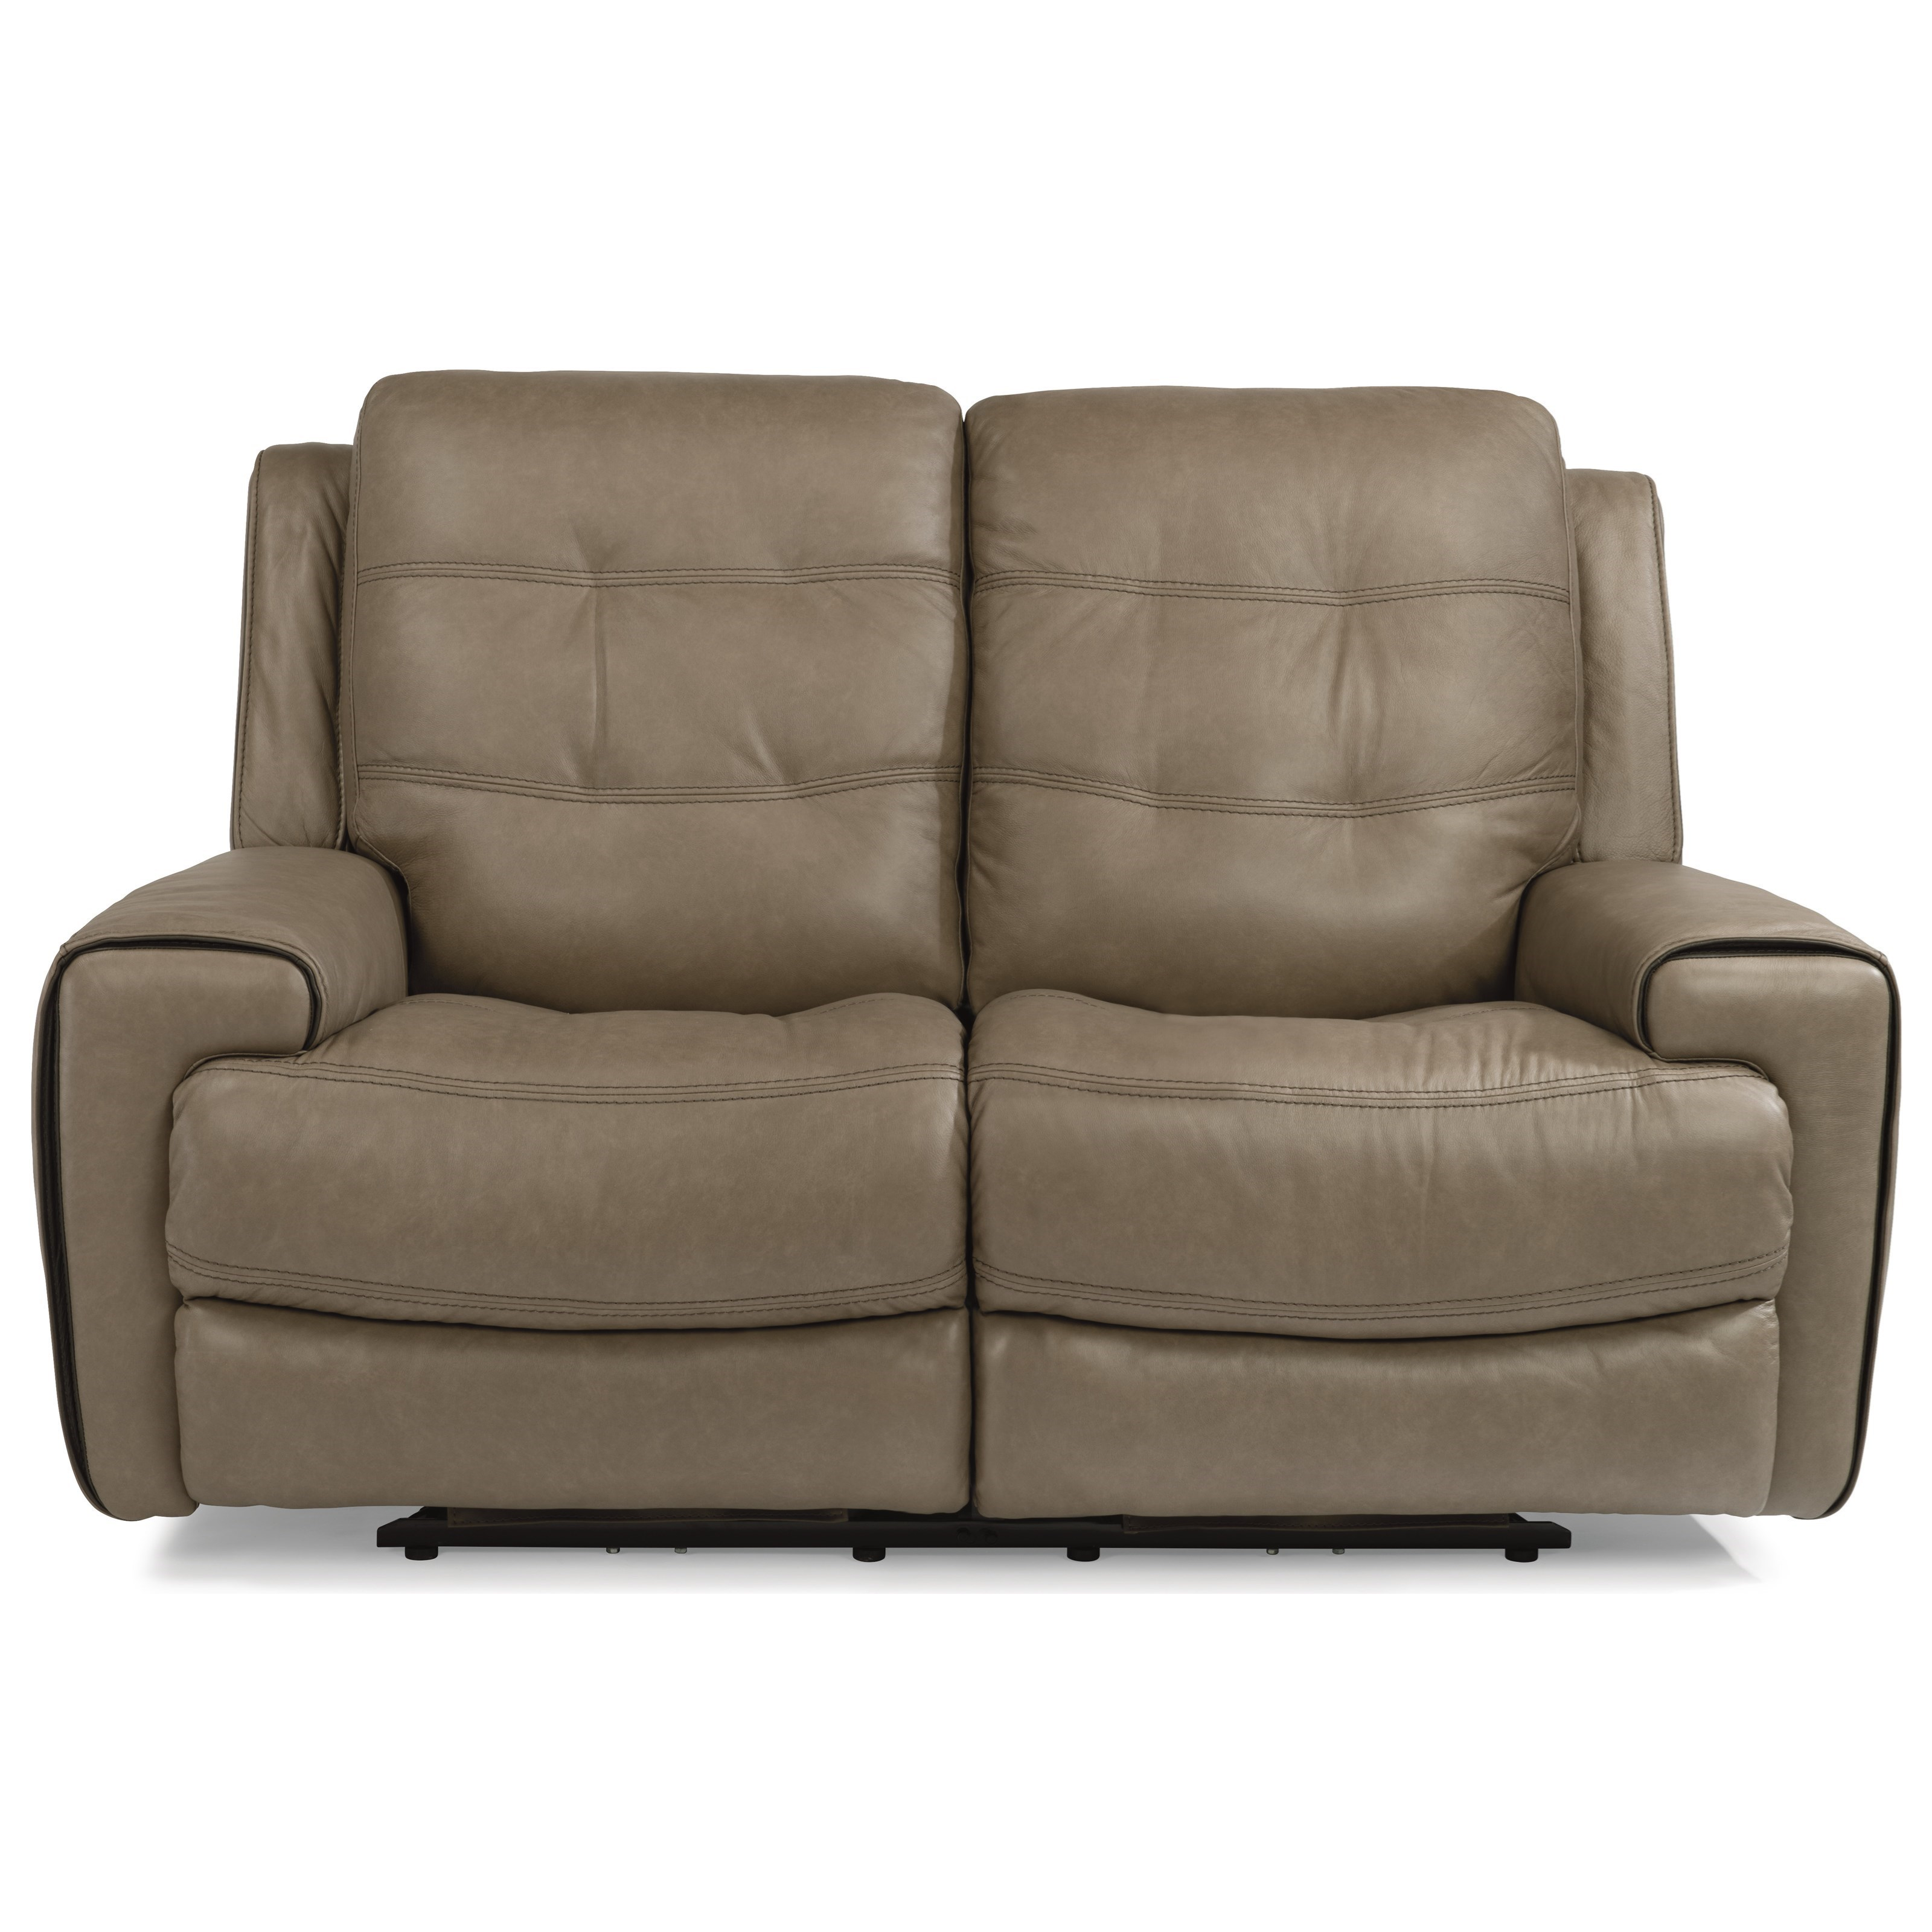 Latitudes-Wicklow PWR Reclining Leather Sofa w/ PWR Headrest by Flexsteel at Walker's Furniture